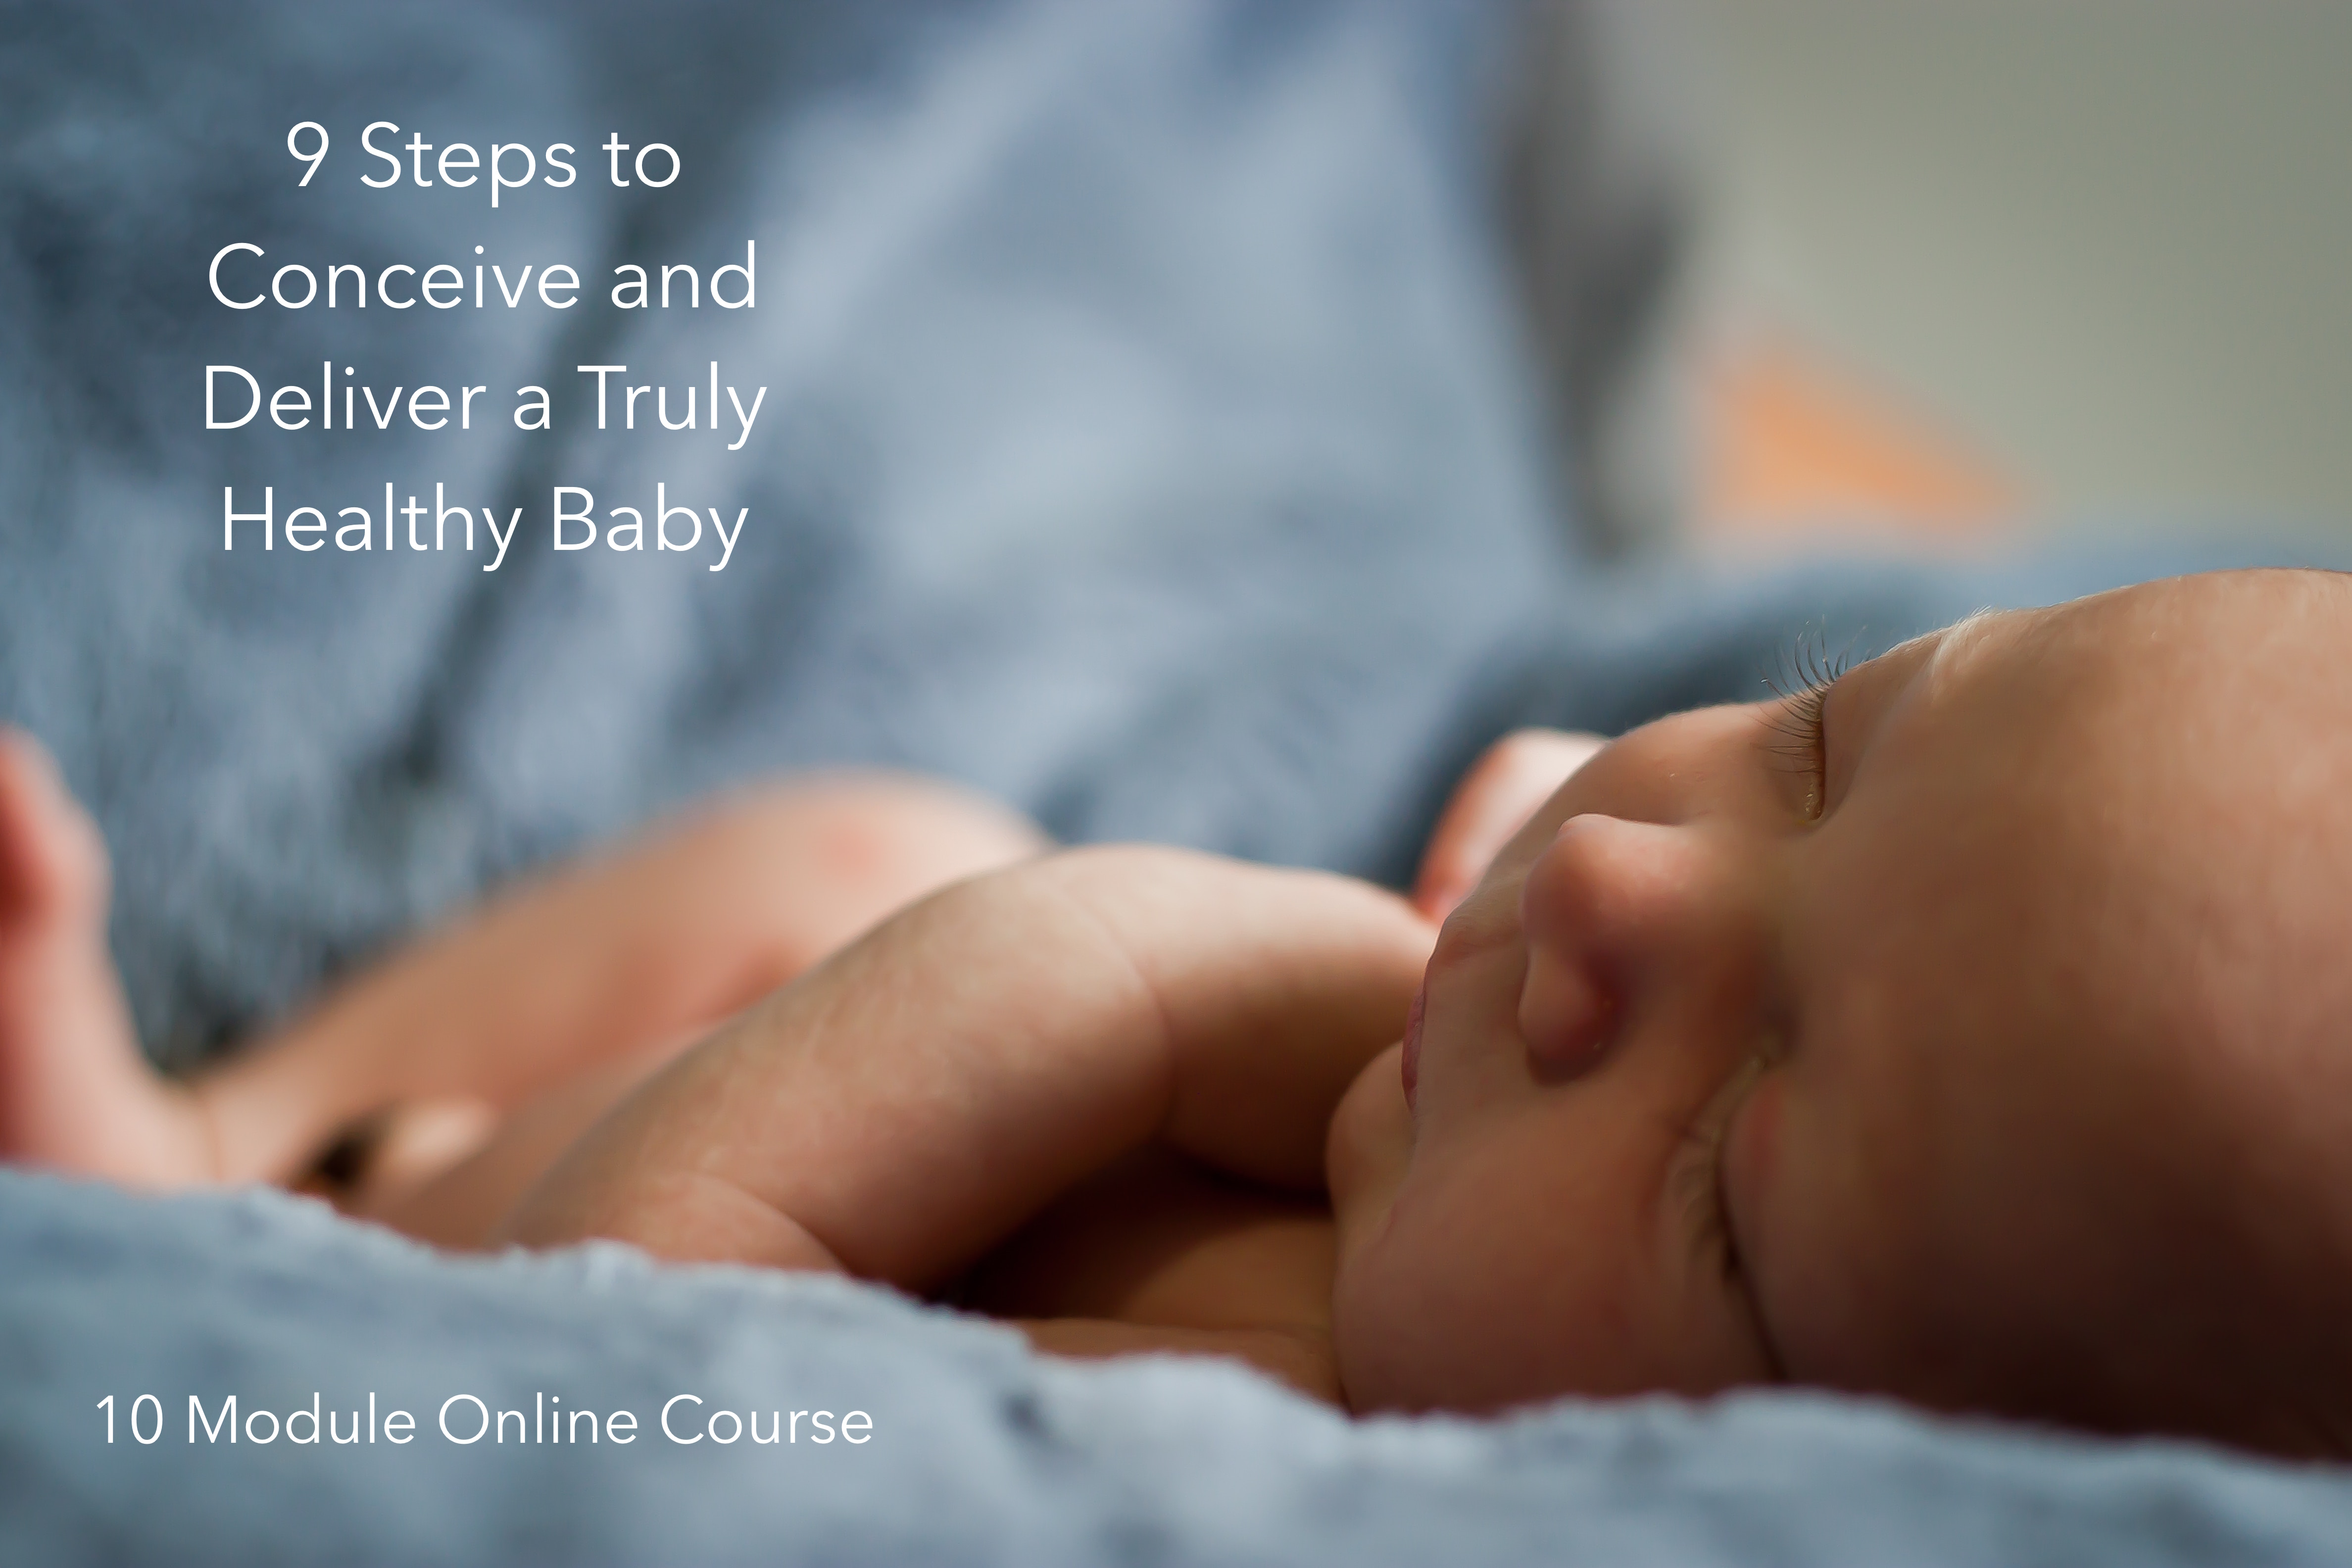 Trying to conceive, fertility issues,  pre-conception planning or simply want to give your baby the healthiest start - this (online 10 module video course) is for you [Online Code] by Health HQ Global